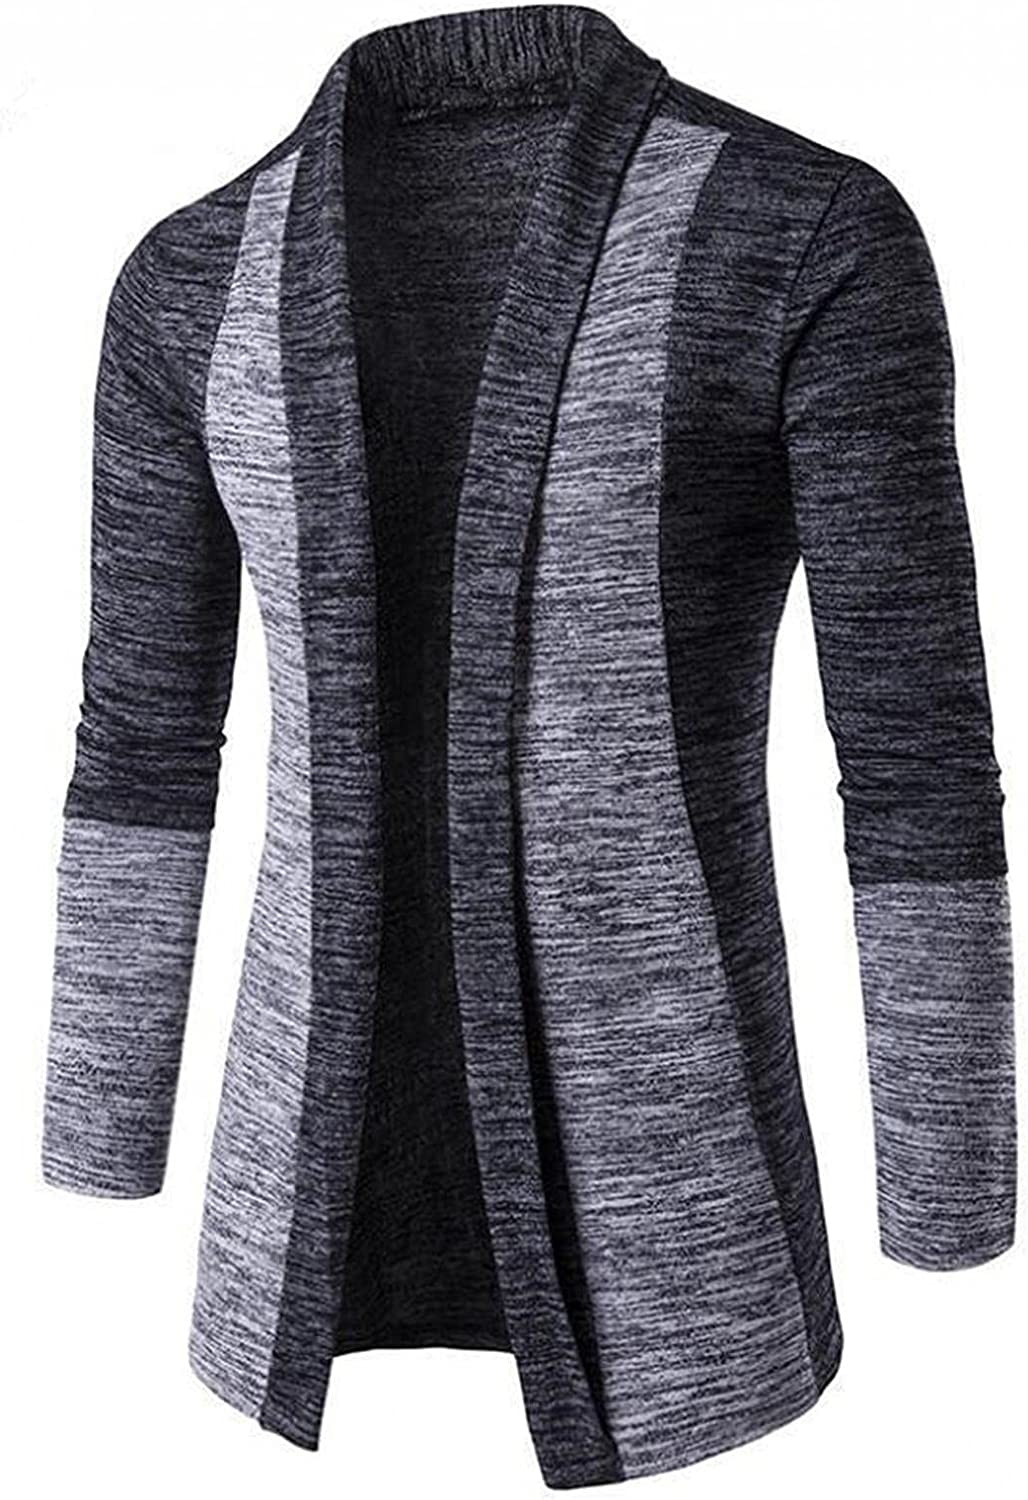 LEIYAN Mens Fashion Front Placket Cardigan Casual Long Sleeve Stand Collar Graphic Collision Jackets